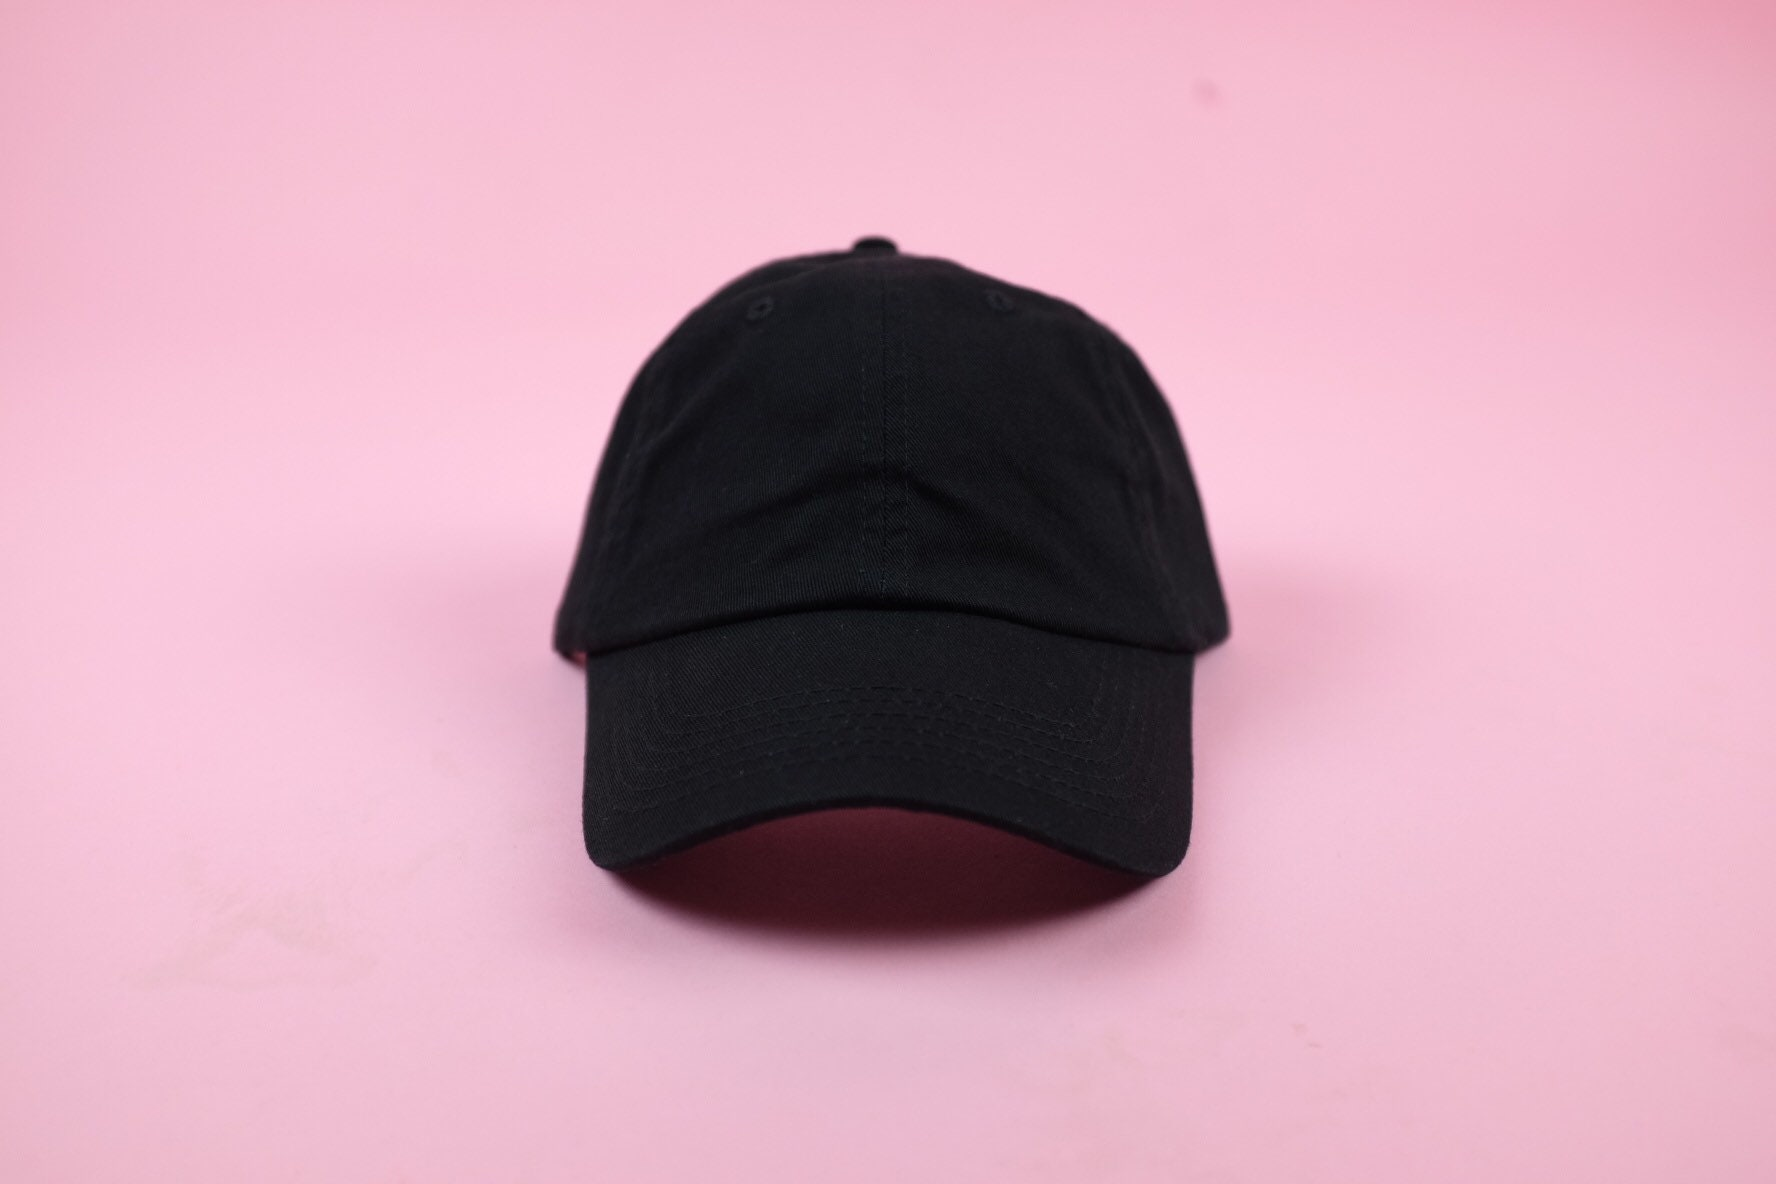 96e02df439c5d Black Hat Curved Brim Six Panel Hat Blank Hat Polo Hat